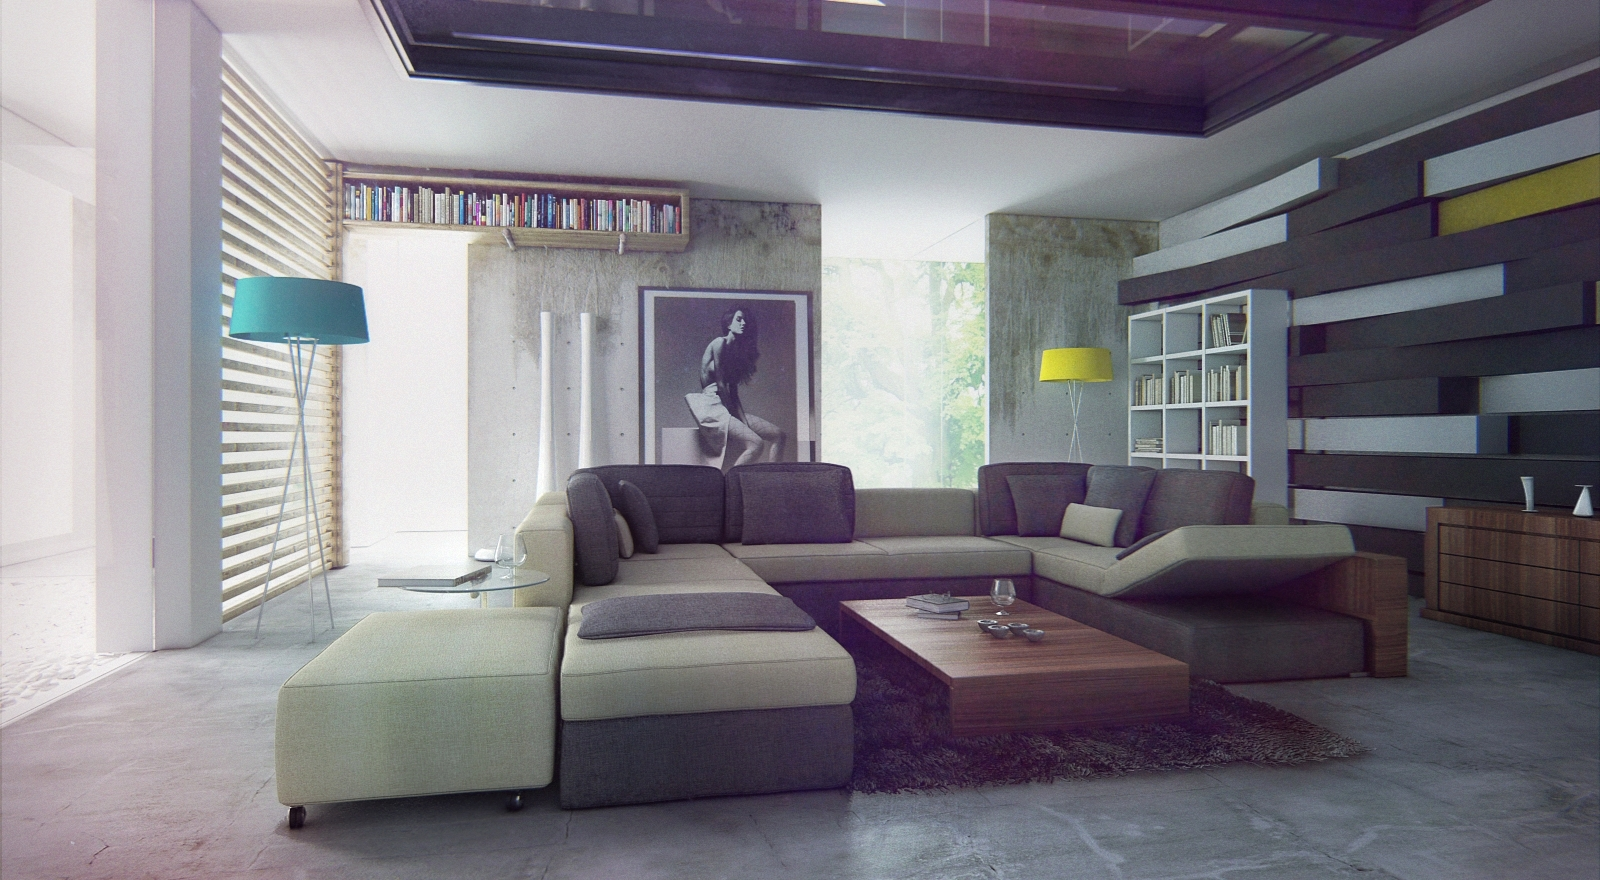 Bachelor pad ideas How to design a living room